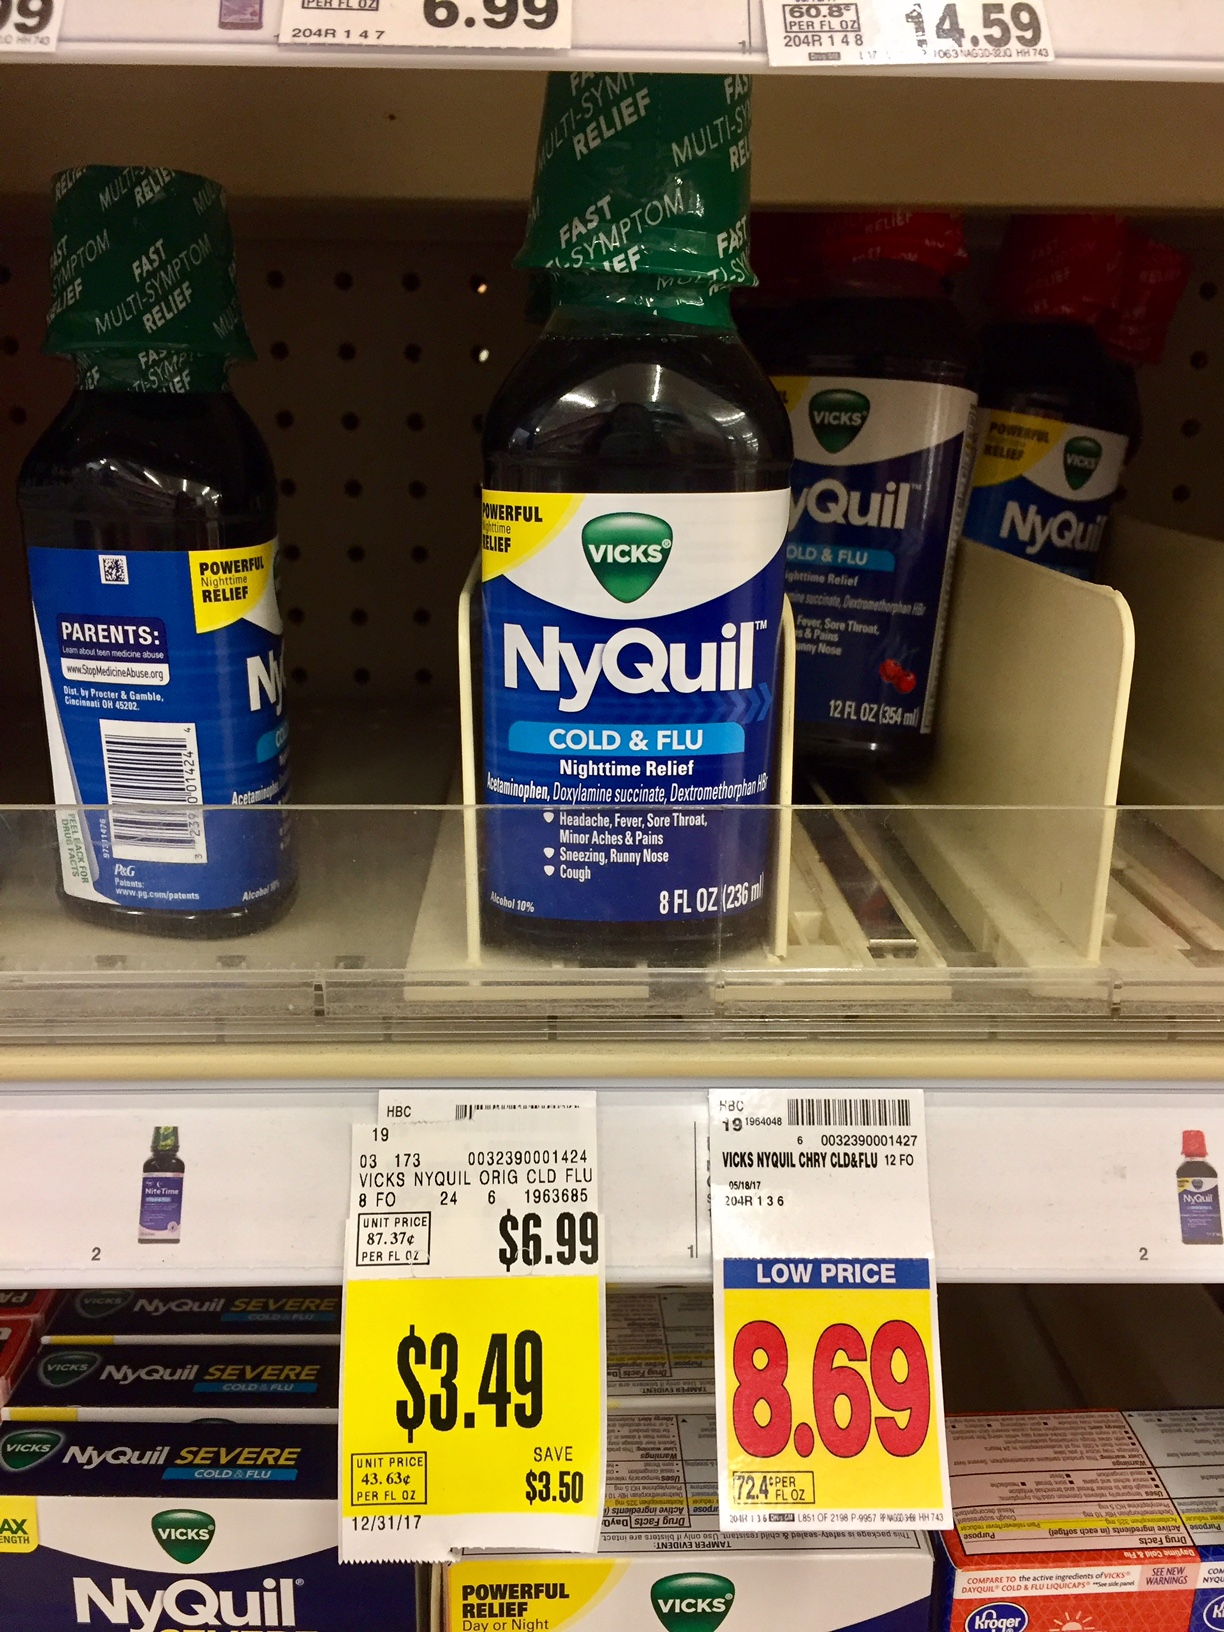 Vicks Nyquil - Can Cause False Positive For Ecstasy (MDMA), Methamphetamines.. All the best and take care.